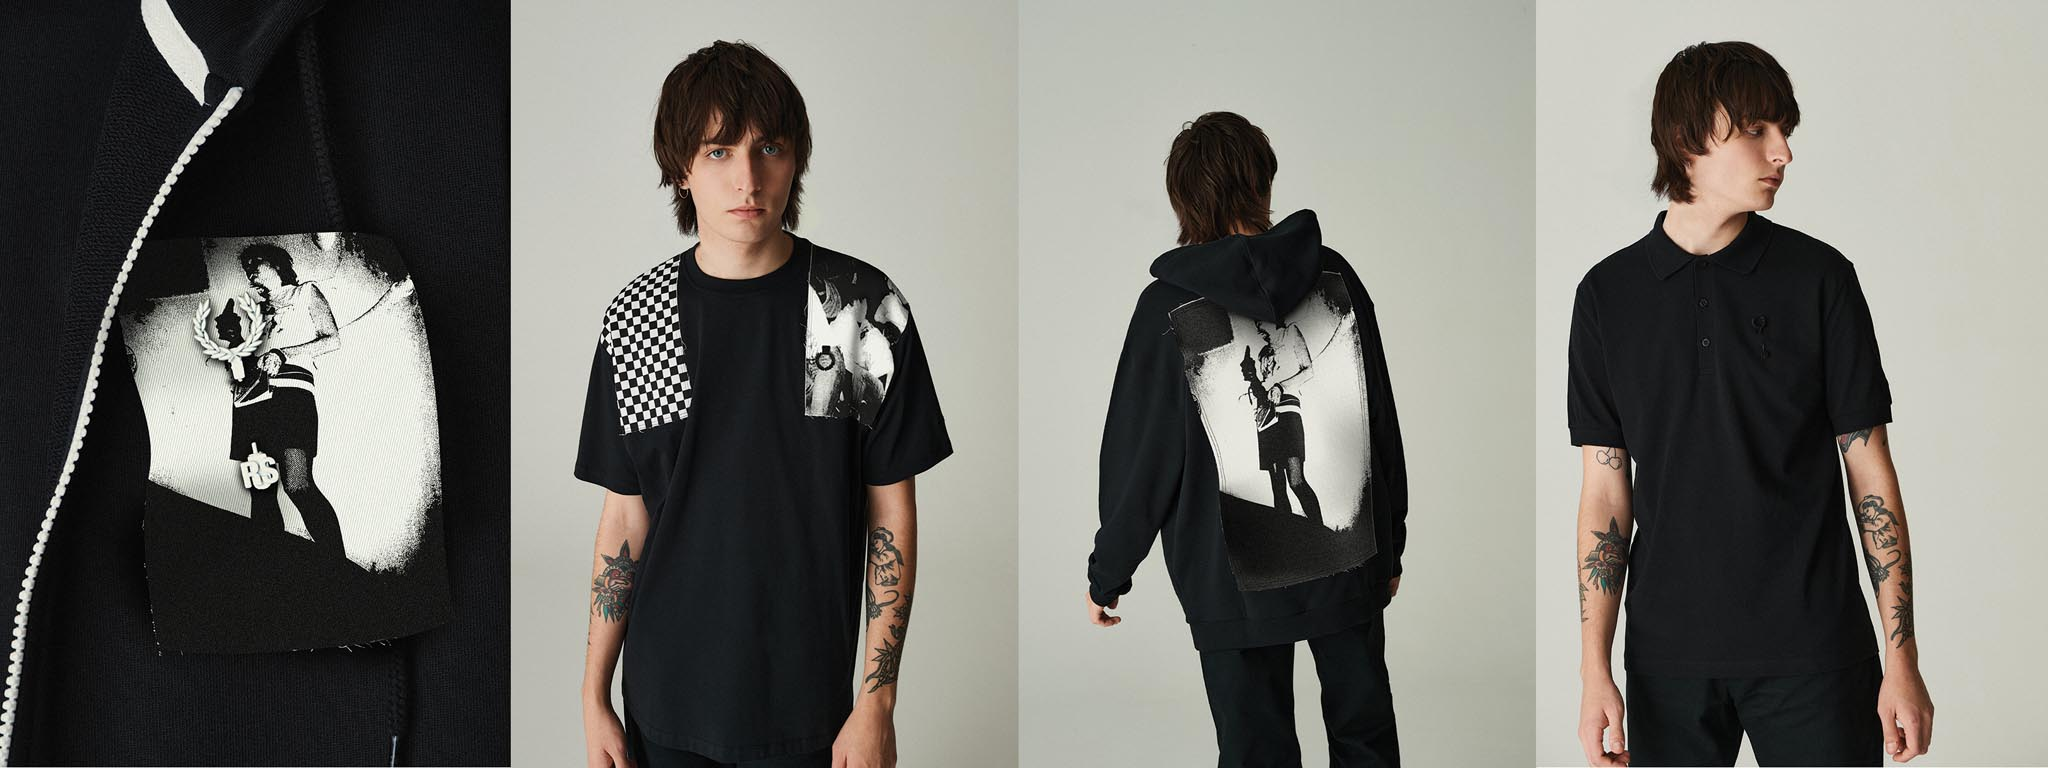 Fred Perry x Raf Simons Spring/Summer Collection - 3